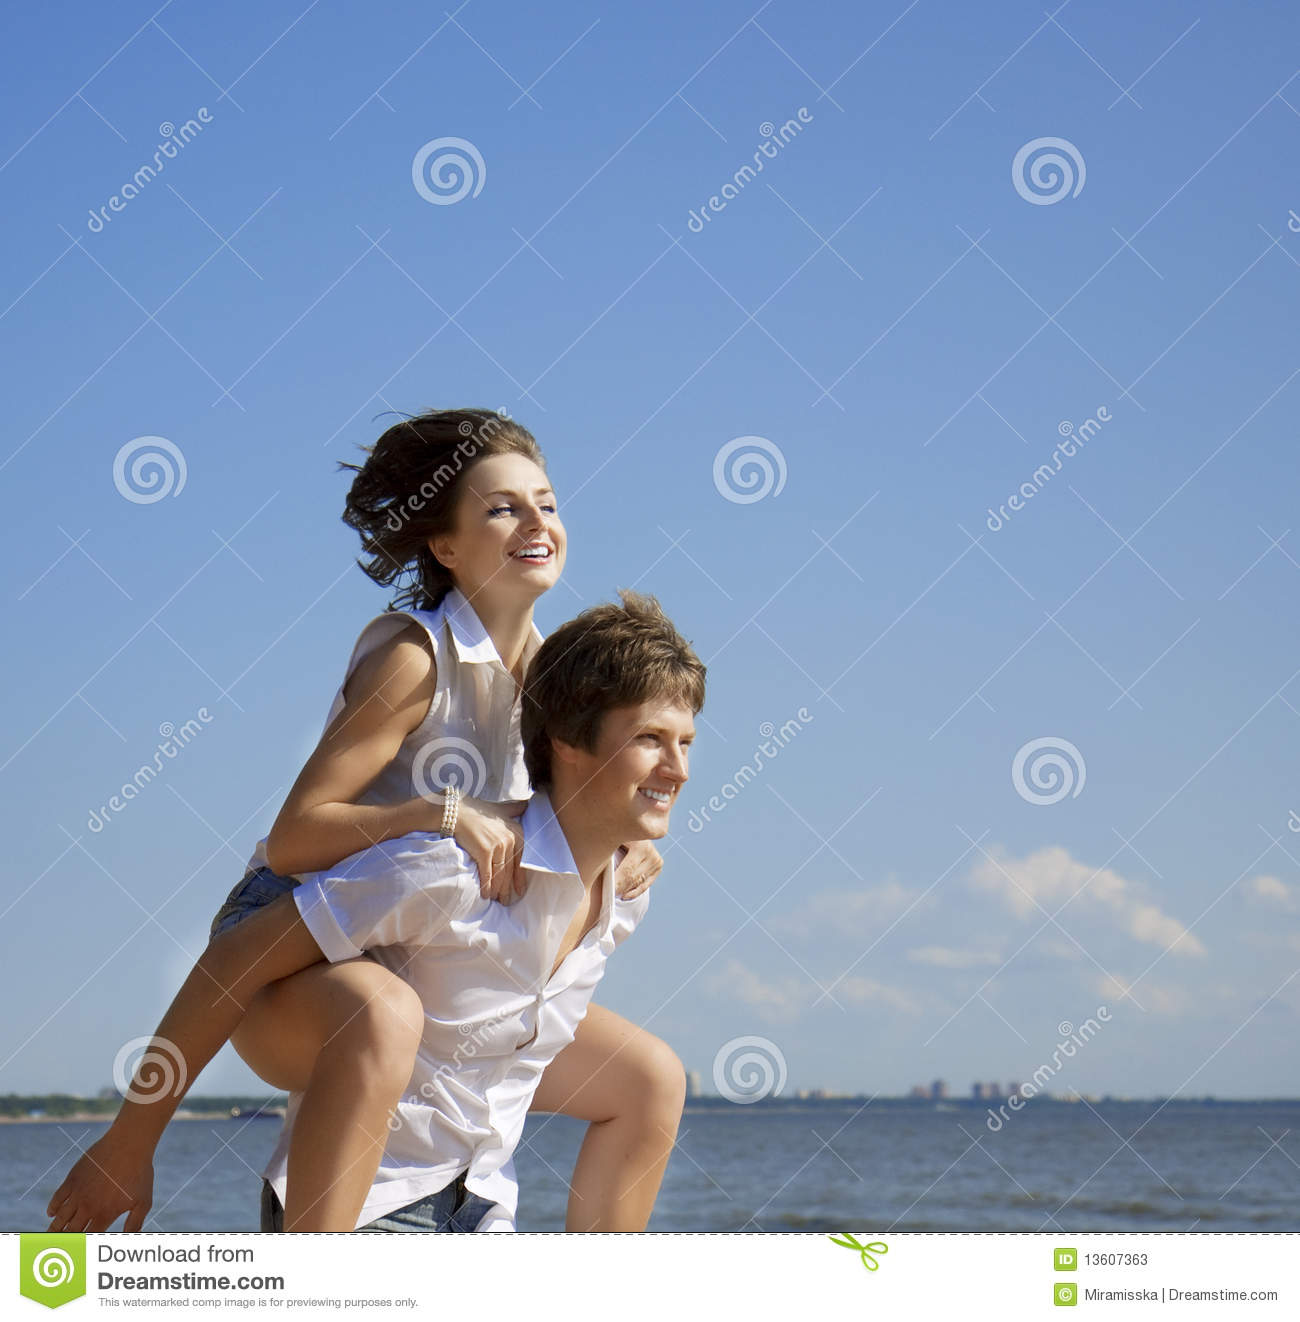 Beautiful People In Love On The Beach Stock Image